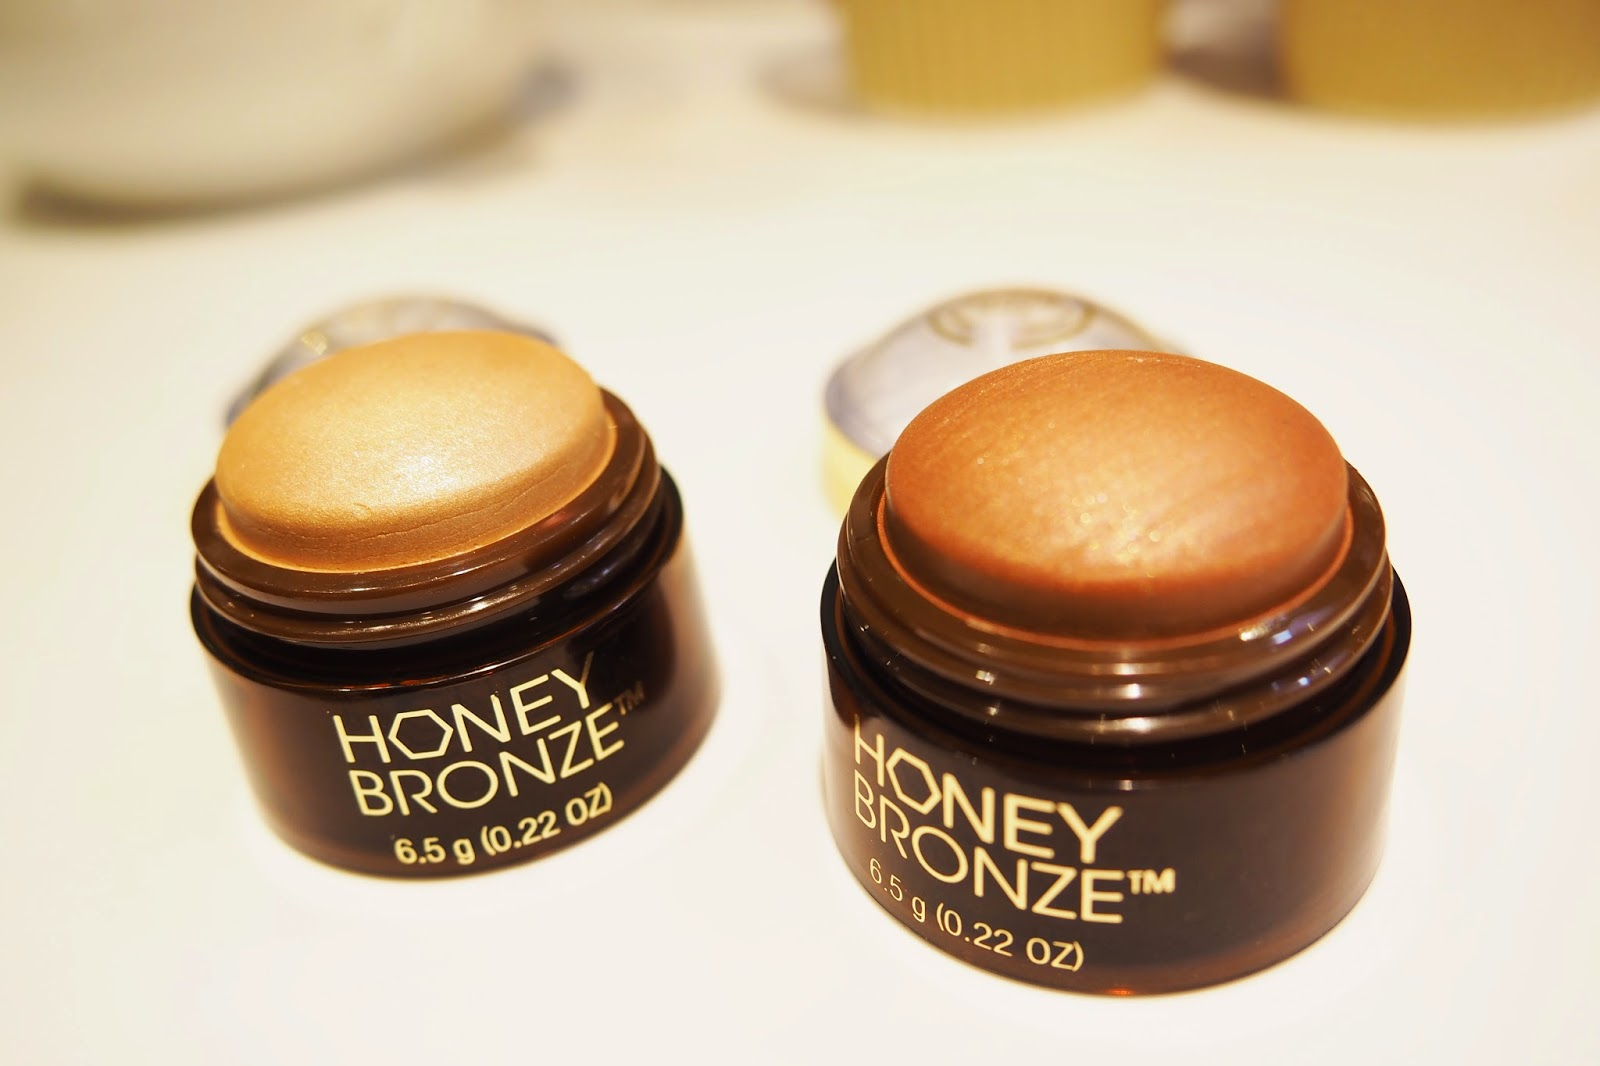 The Body Shop Honey Bronze Bronzer Highlight Make Up